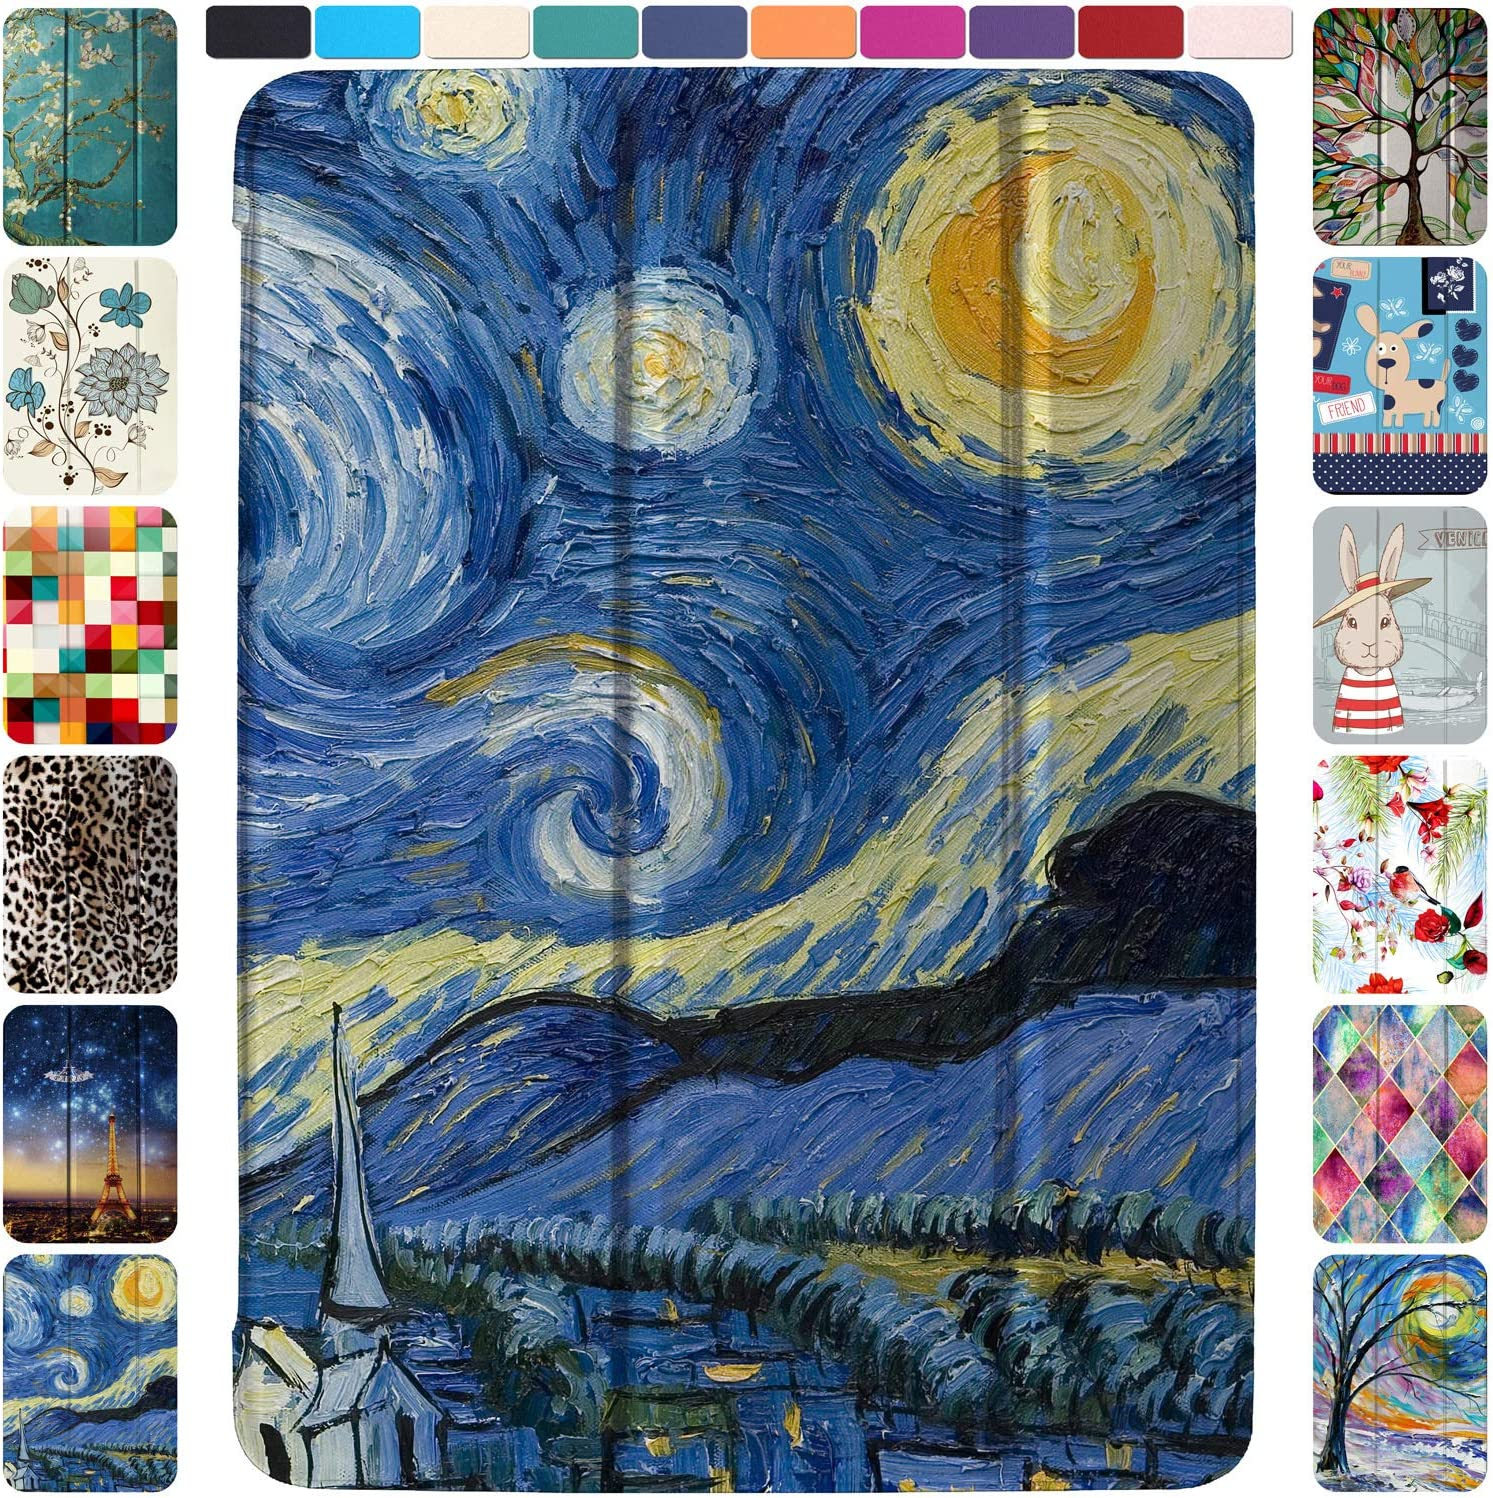 DuraSafe Cases for iPad PRO 11 2020 MY232LL/A MXDC2LL/A MXDE2LL/A MXDG2LL/A MY252LL/A MXDD2LL/A MXDF2LL/A MXDH2LL/A Ultra Slim Supportive Classic Case with Adjustable Stand Feature - Starry Night